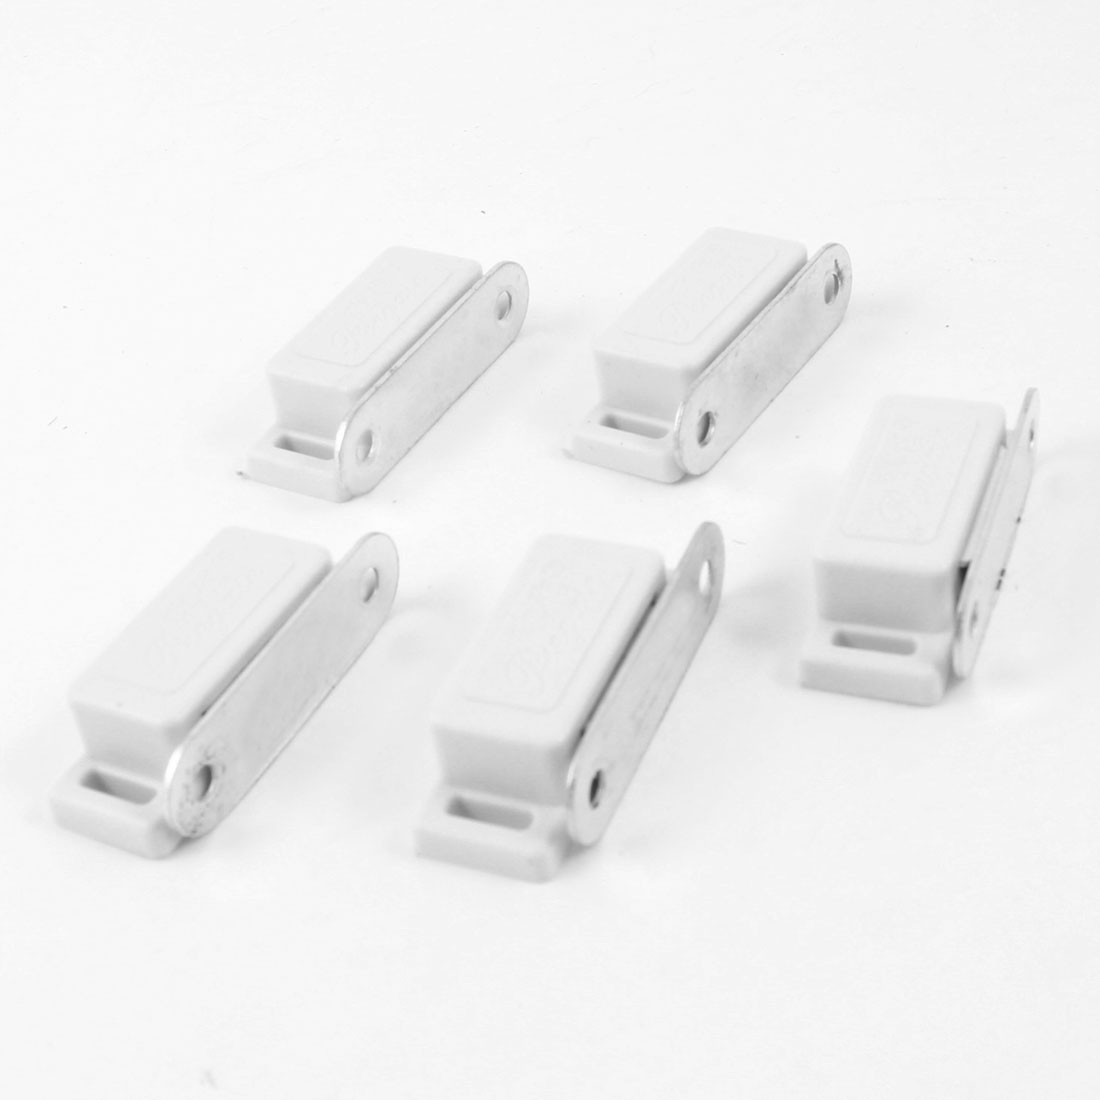 5 Pcs White Plastic Case Metal Plate Cupboard Door Magnetic Catch 1.77""